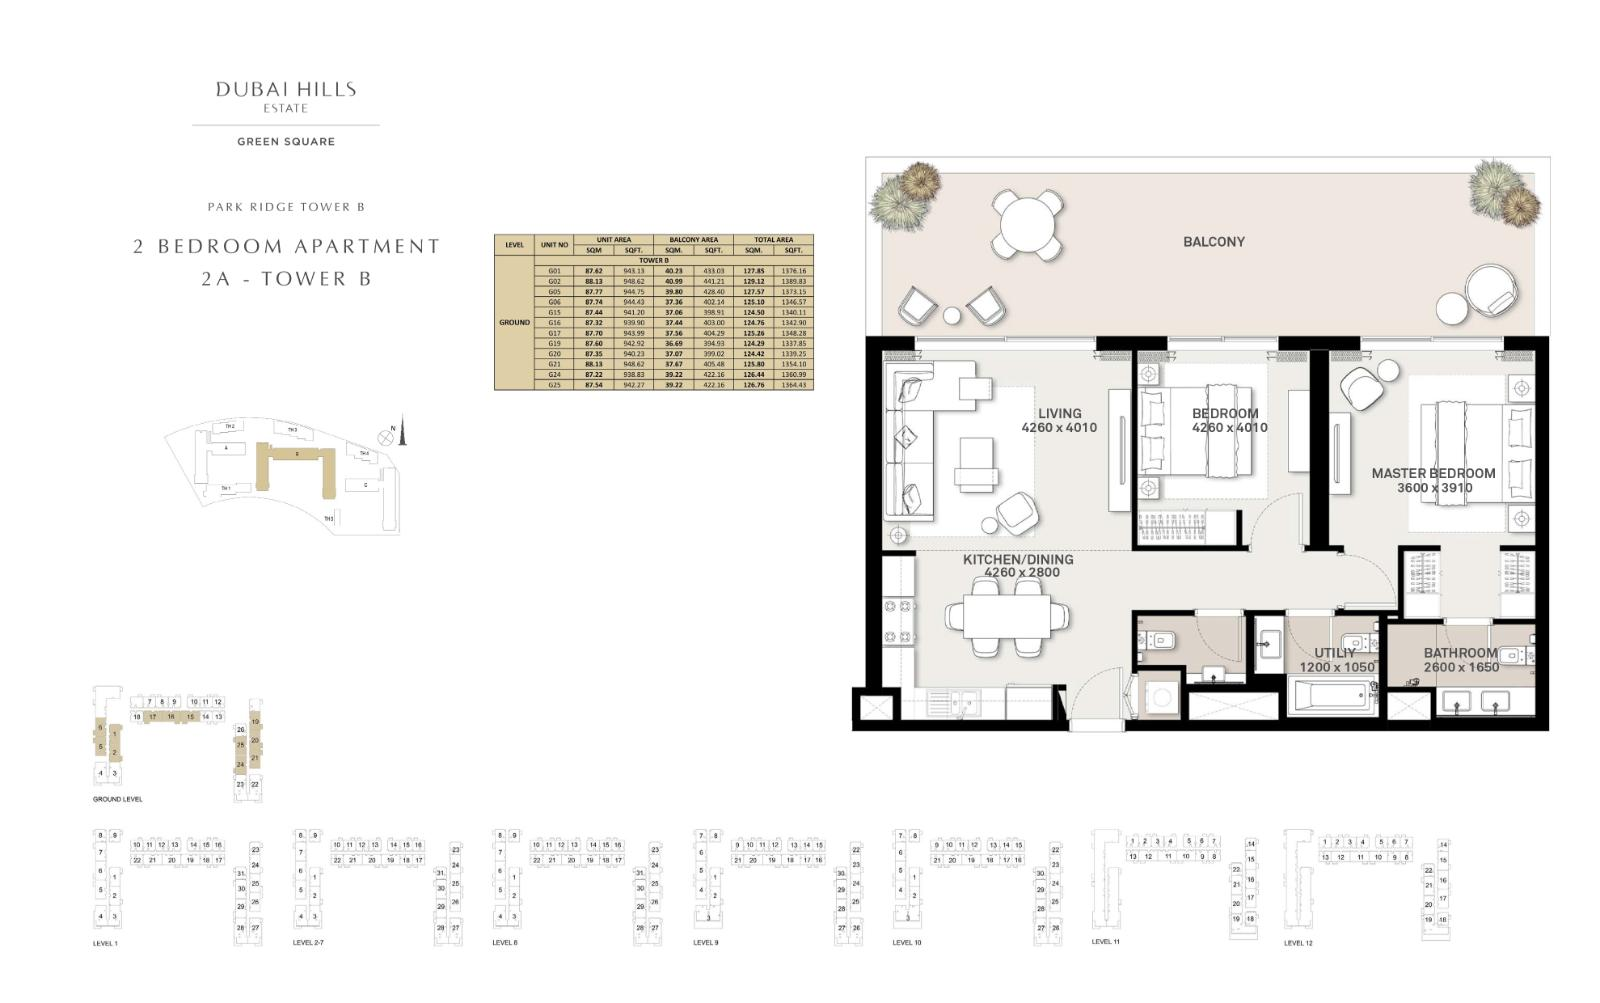 2 Bedroom Apartment Tower B 1364.43sqft